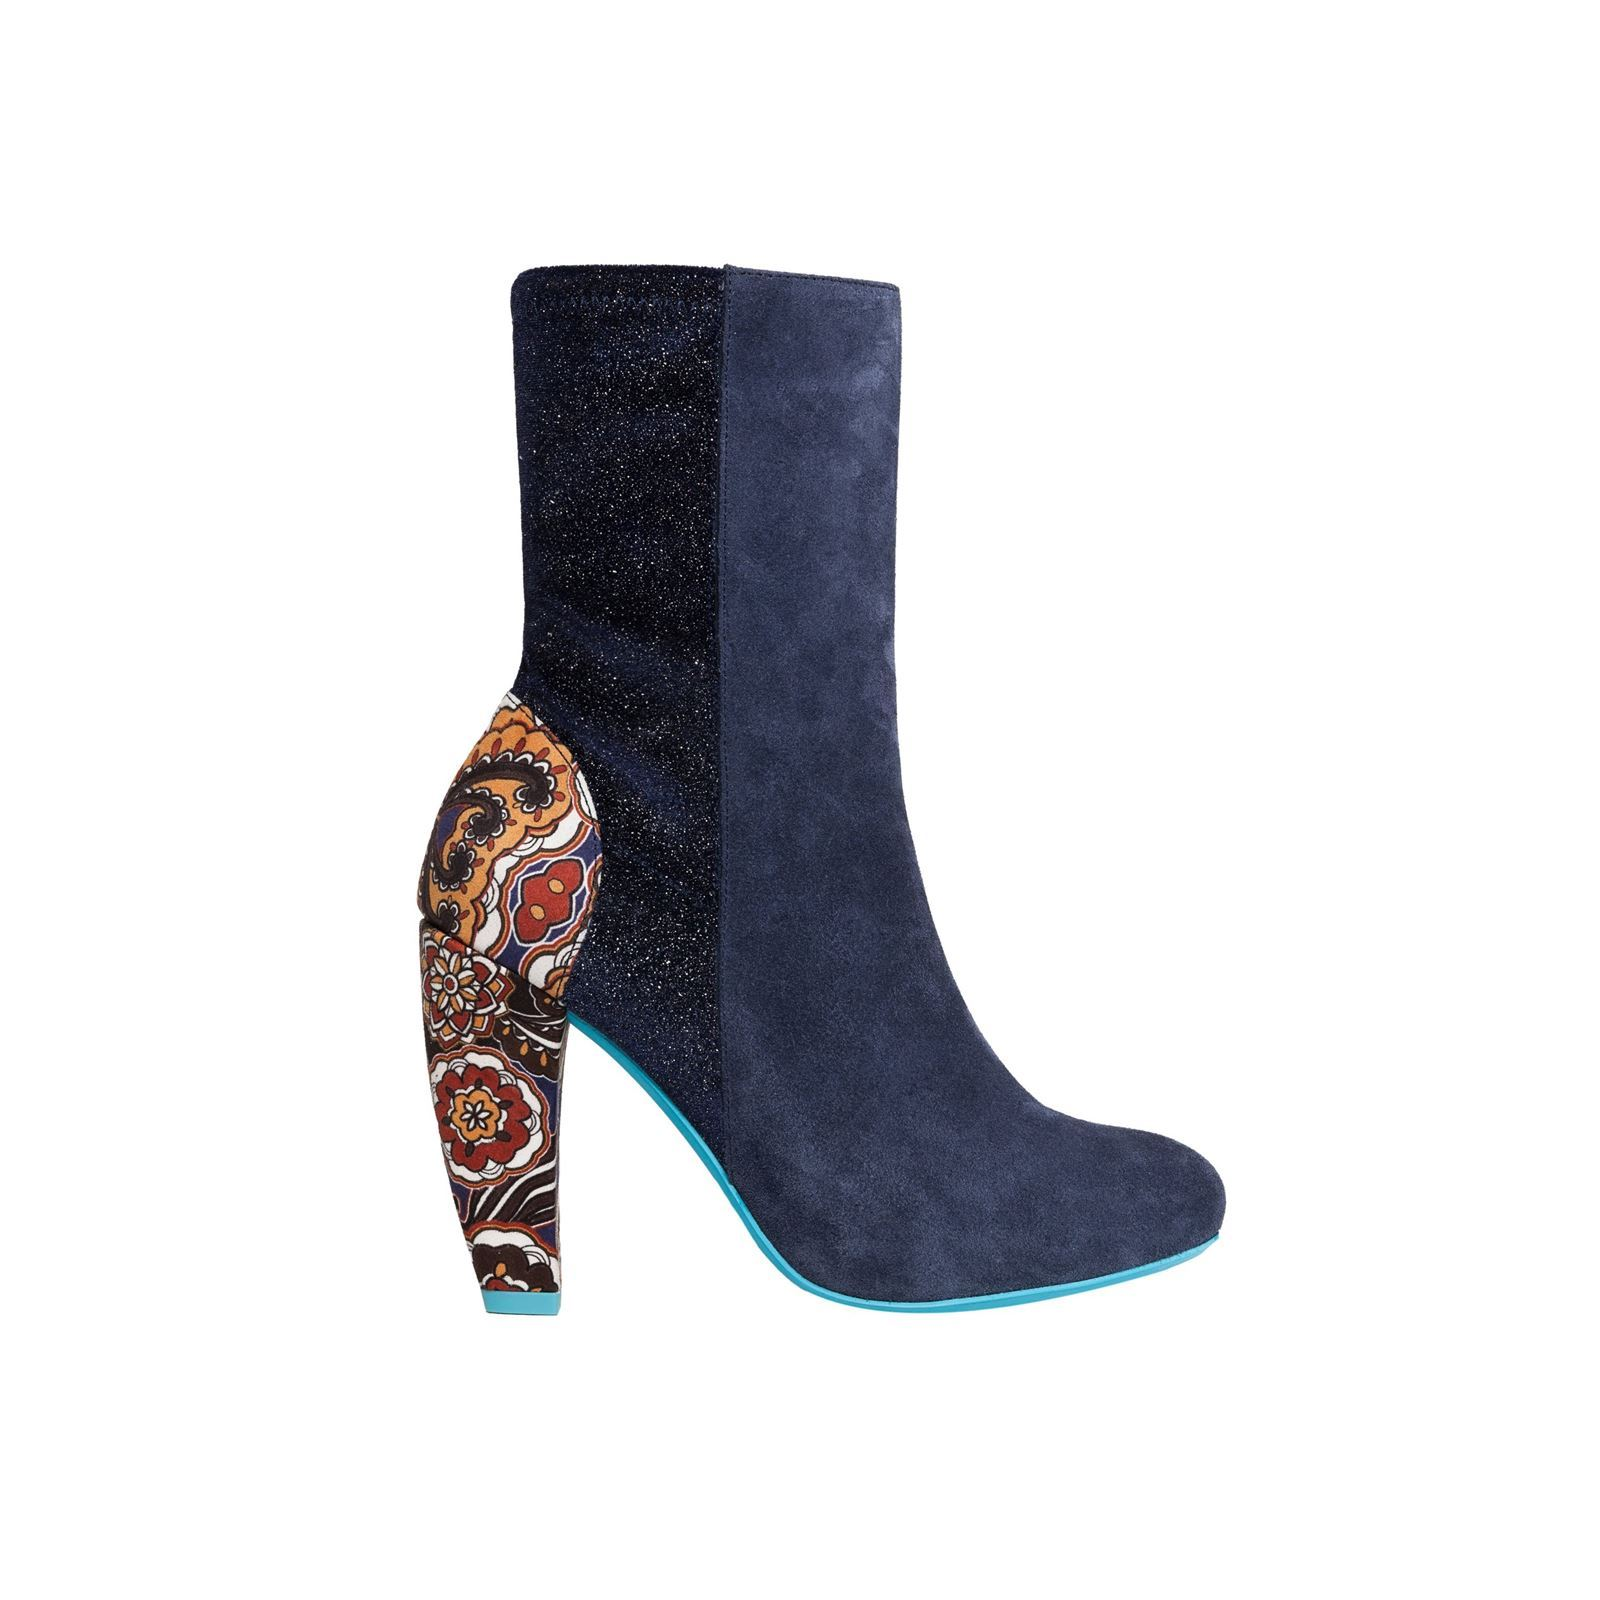 Desigual Bottines - multicolore